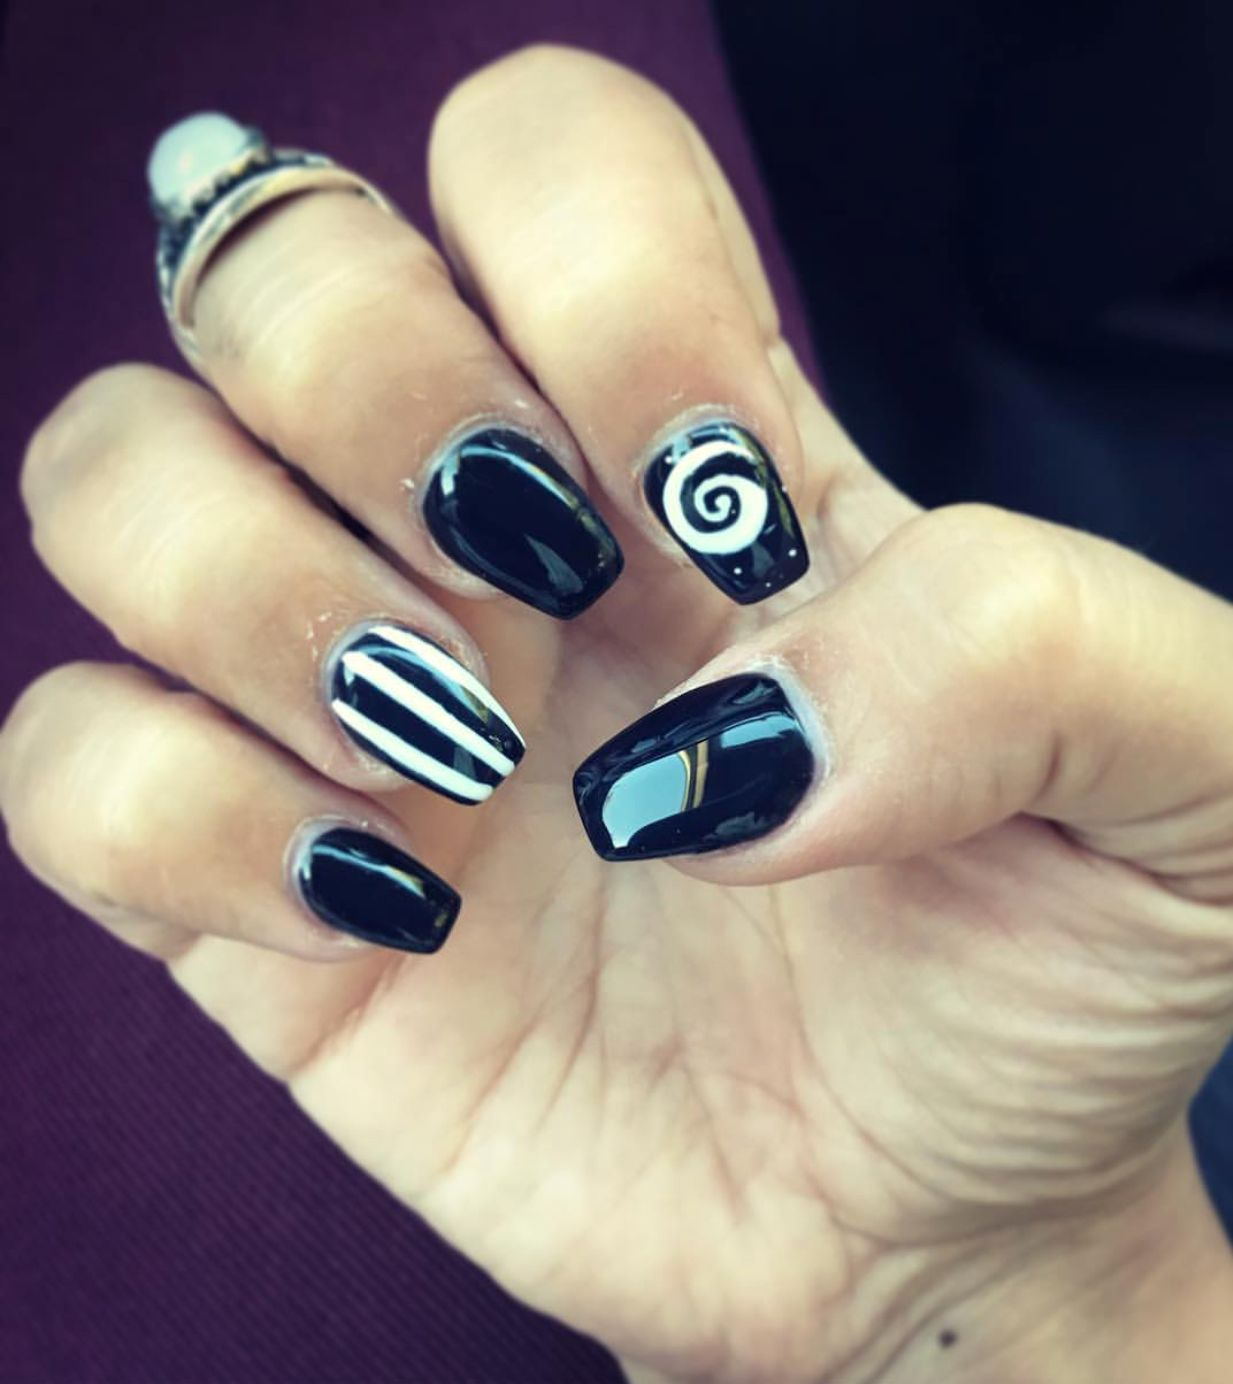 Nightmare Before Christmas Nails. Halloween Nails | Themed Nail Art ...